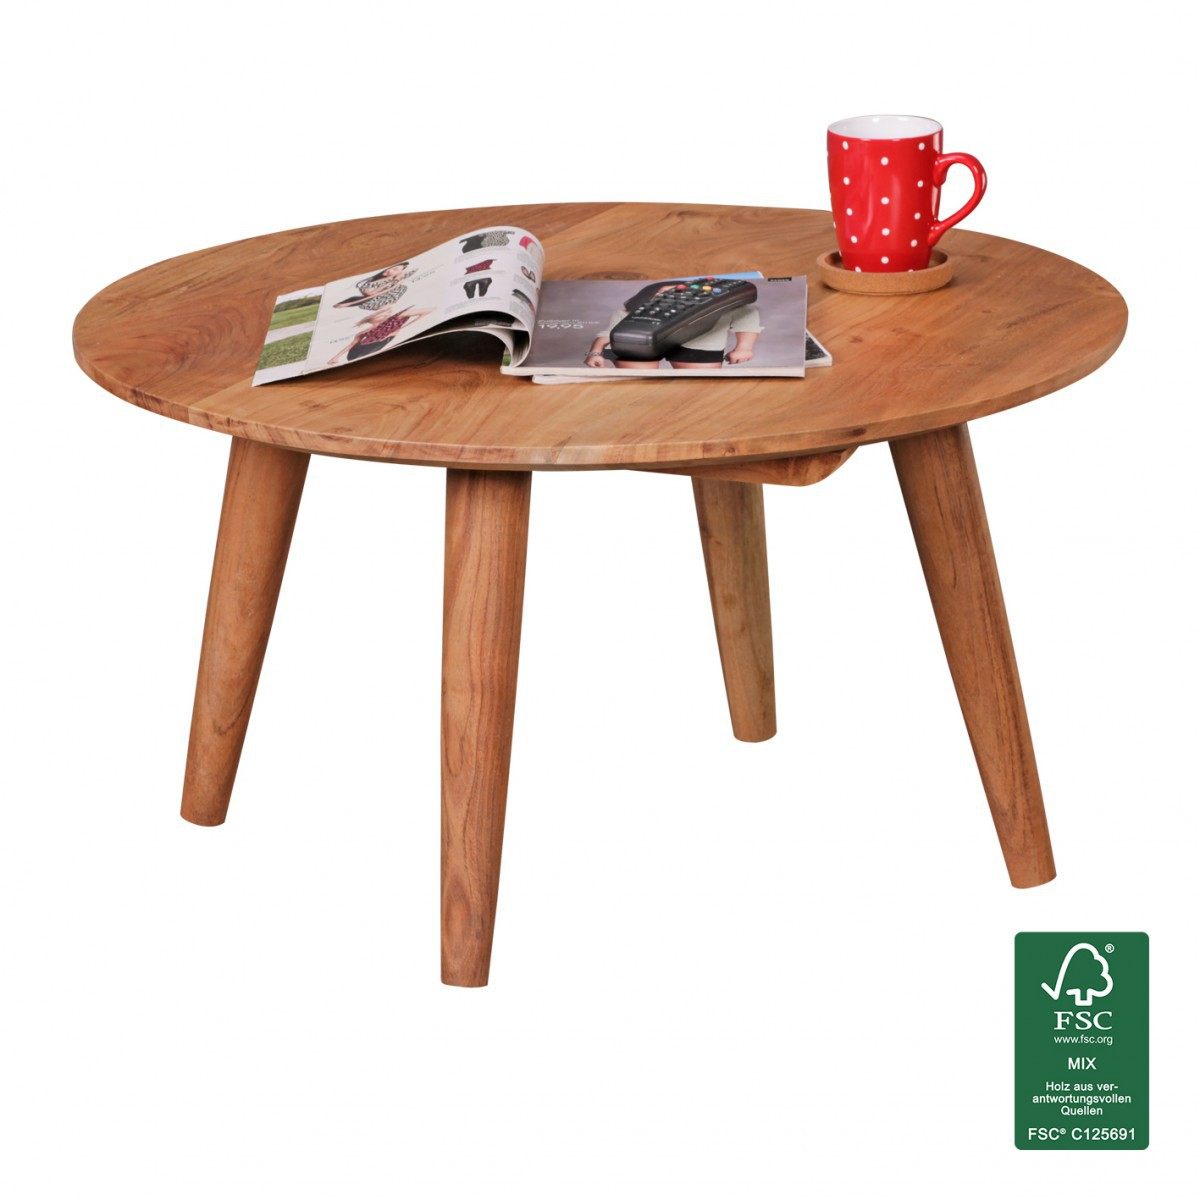 Finebuy table basse en bois massif acacia table basse for Table basse hauteur 55 cm